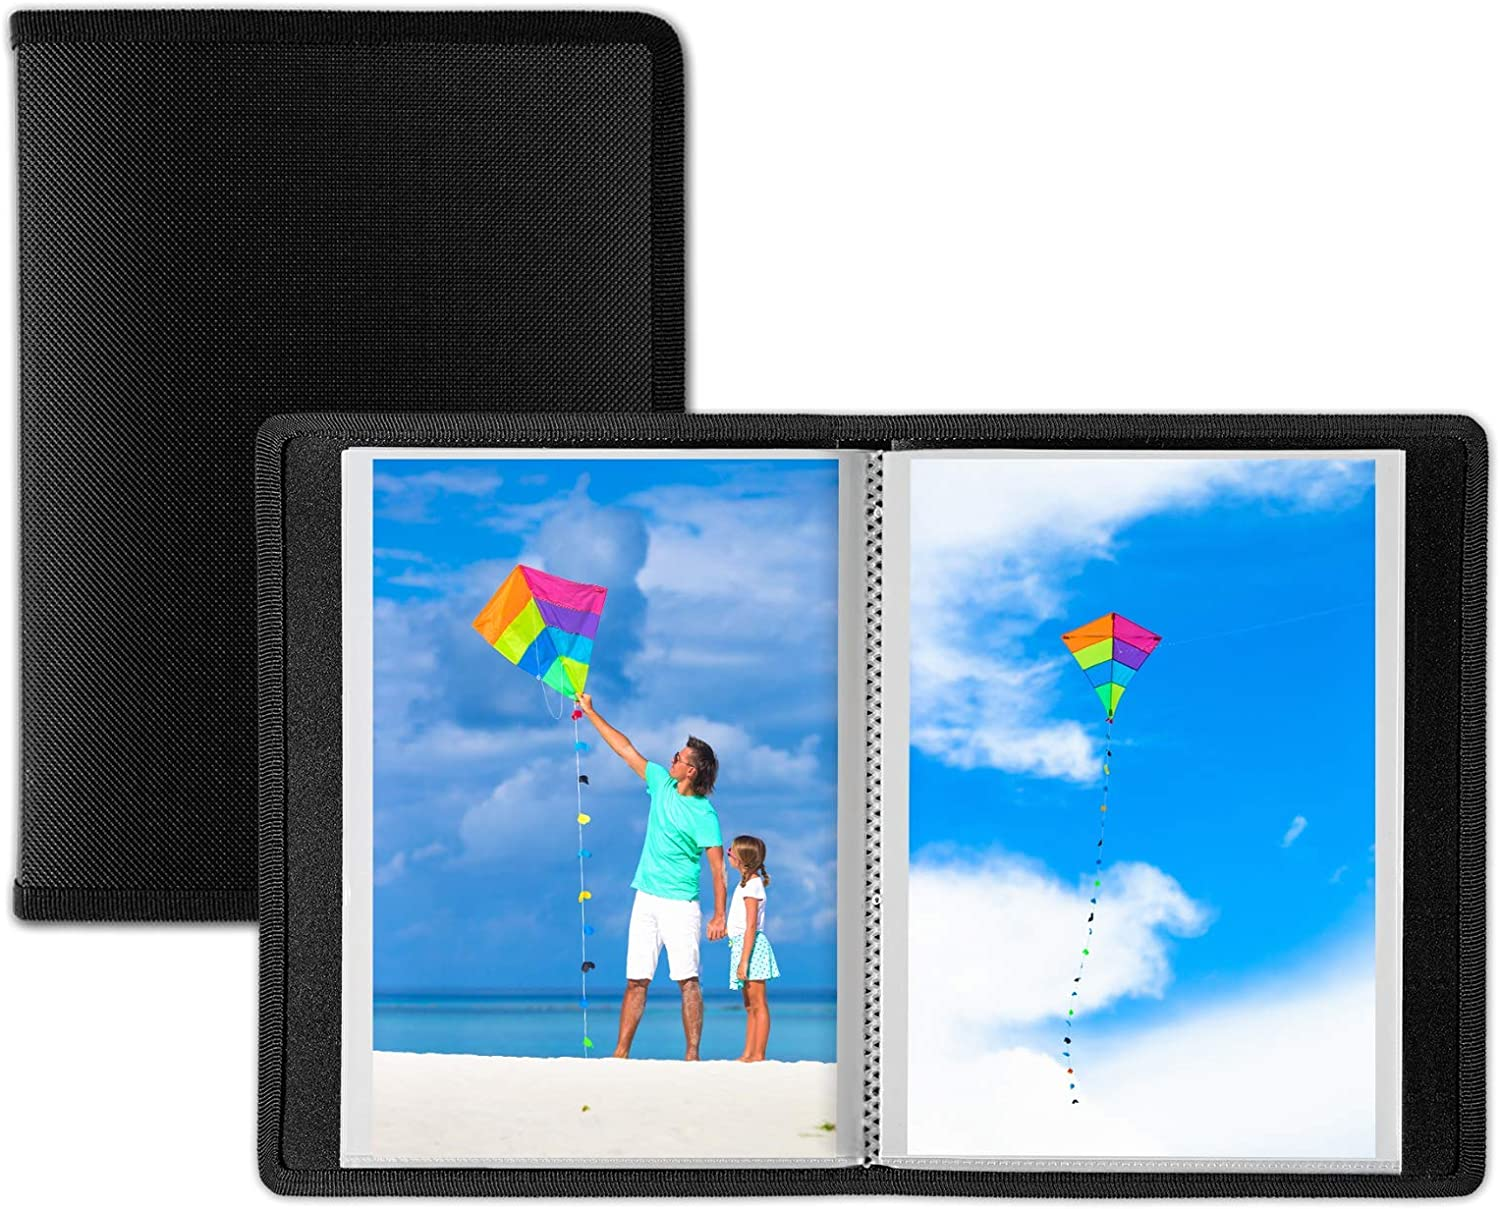 Dunwell Small Photo Album 4x6 - (Black, 2 Pack), 24 Pages Hold 48 Pictures, 4x6 Portfolio Folder for Artwork, Photo Brag Book, Great for Postcards or Picture Storage, Album for 4 x 6 Photos